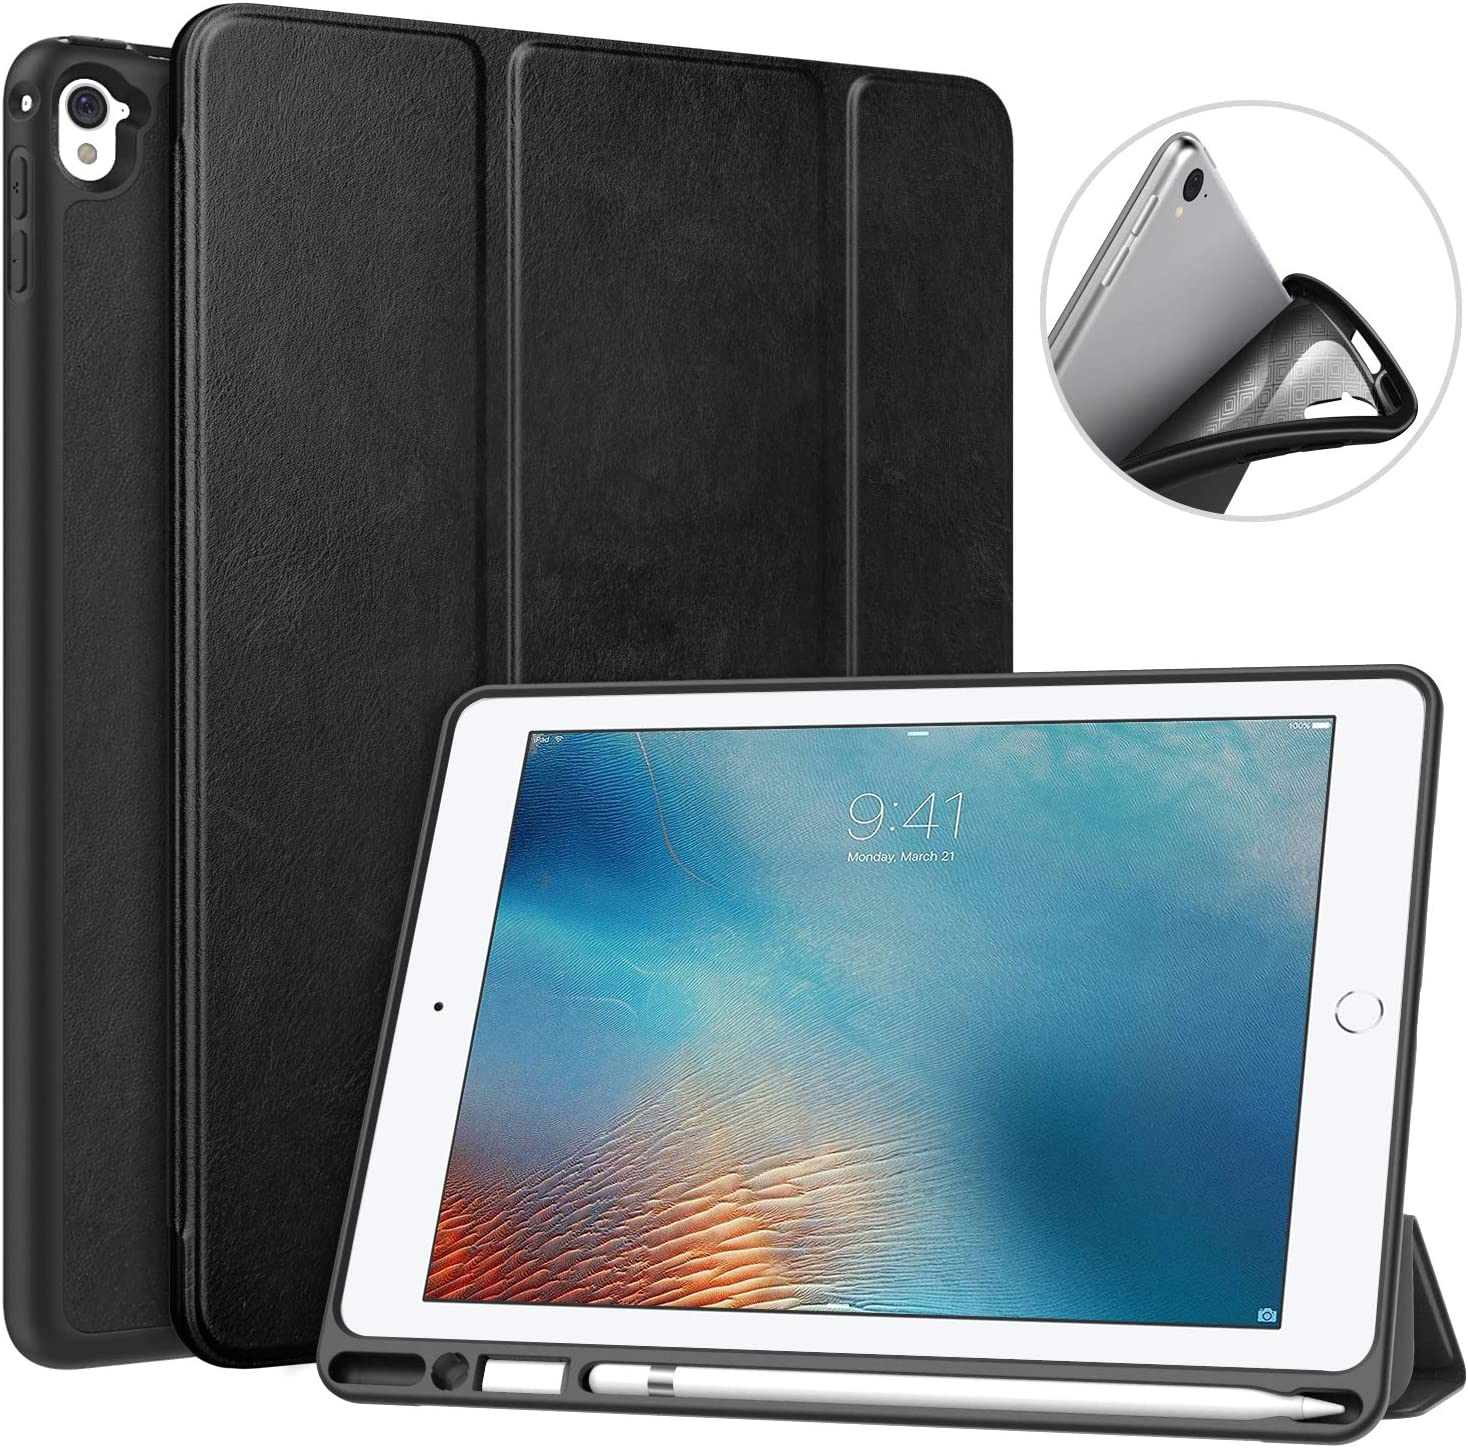 Amazon Com Moko Case Fit Ipad Pro 9 7 With Pencil Holder Slim Lightweight Smart Shell Stand Cover Case With Auto Wake Sleep Fit Ipad Pro 9 7 Inch 2016 Tablet Black Computers Accessories